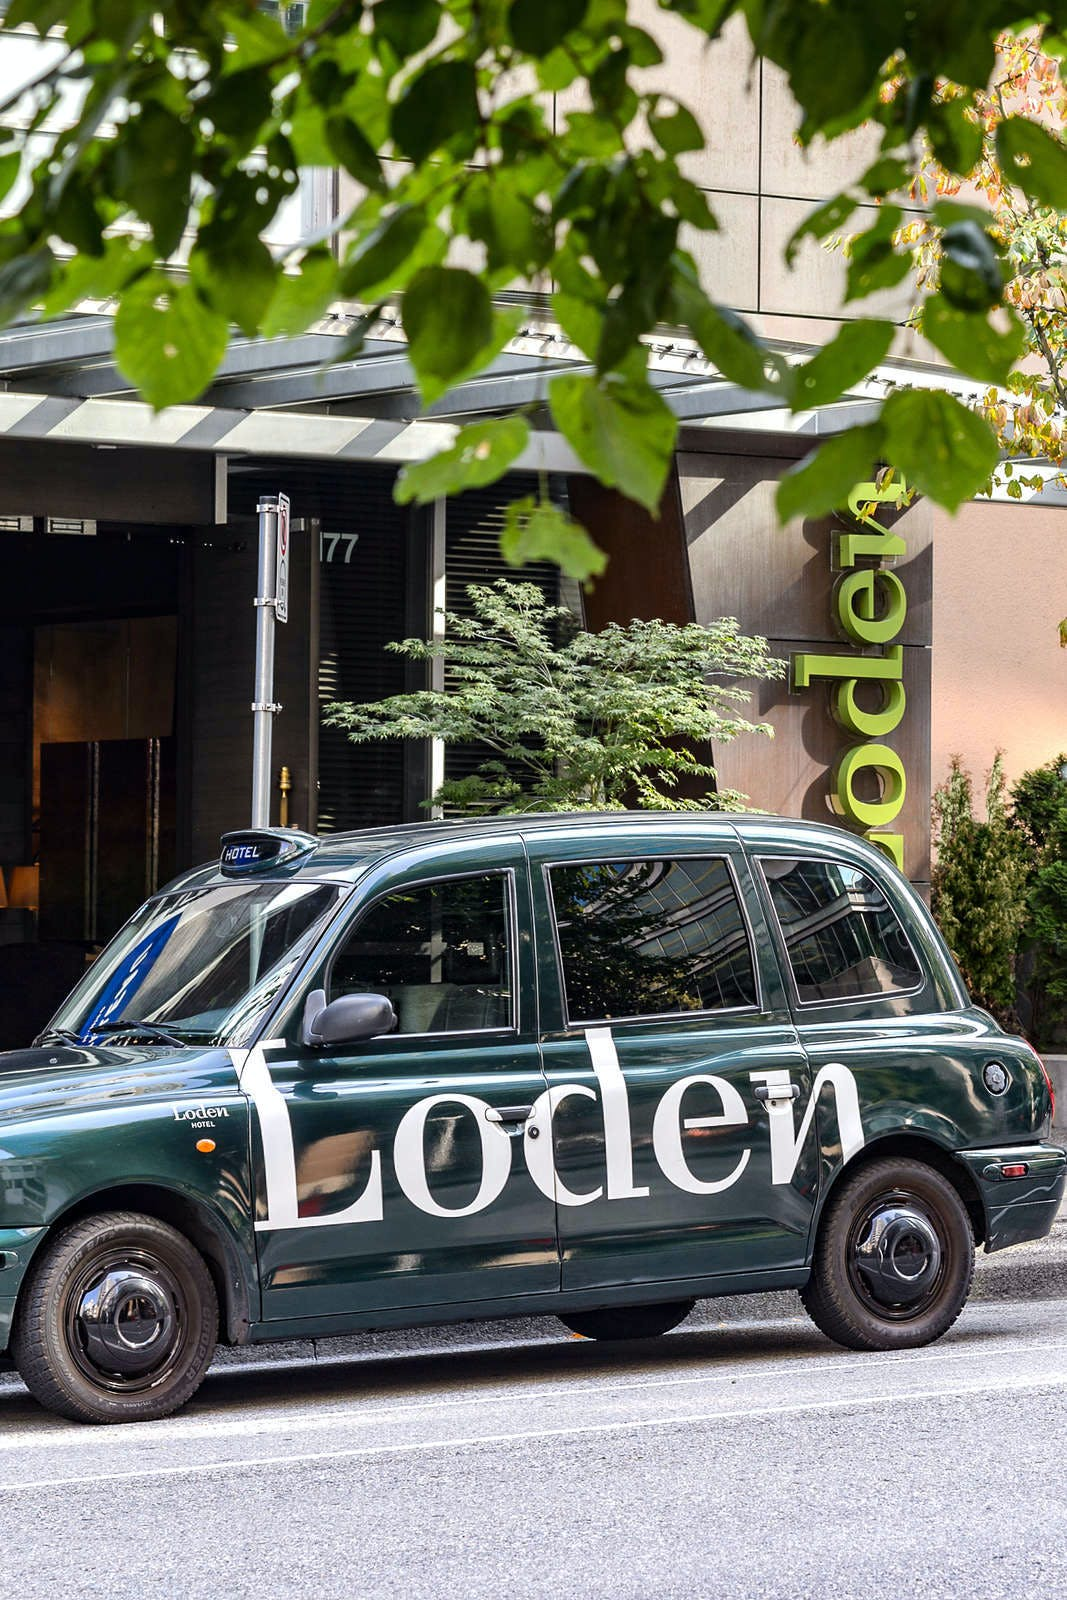 The Loden Hotel